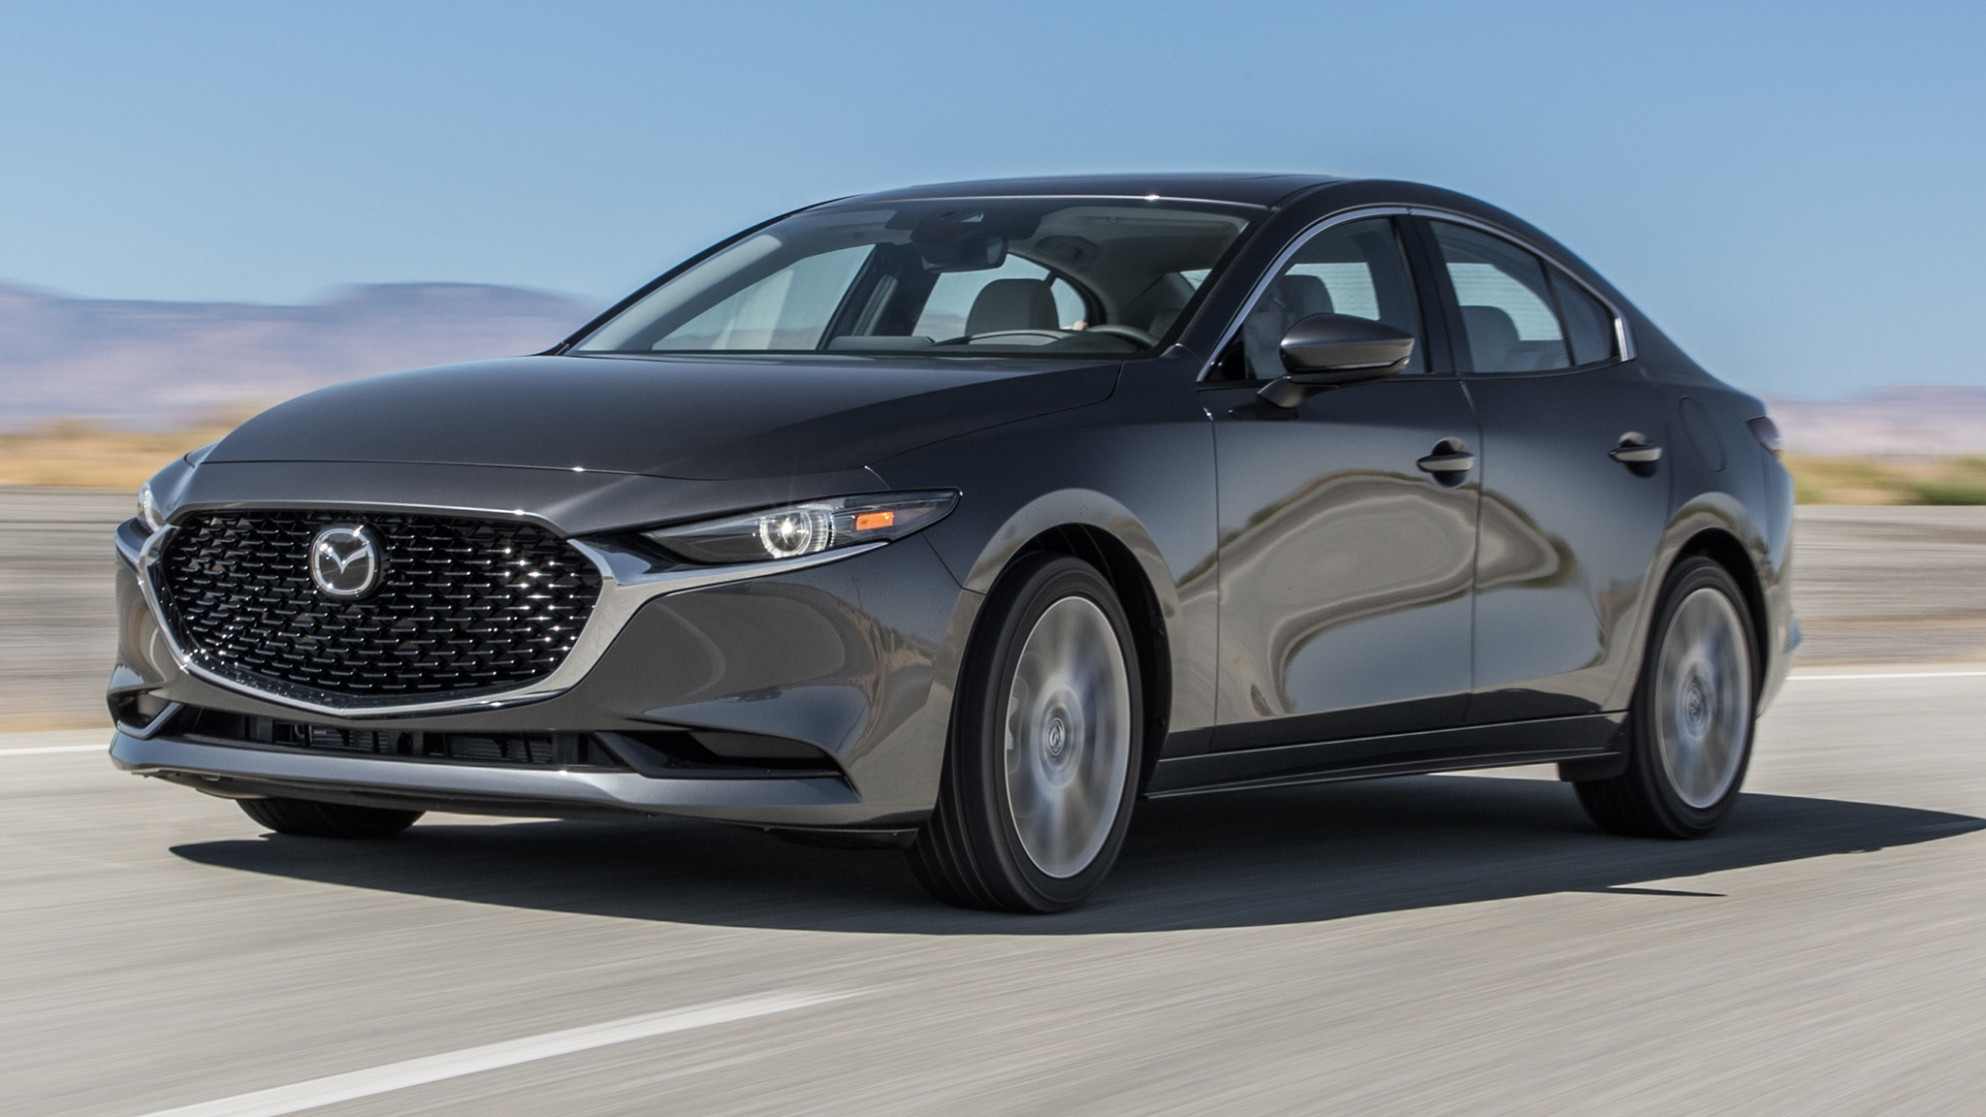 8 Mazda8 Review: Why 8 Is No Longer the Magic Number - 2020 mazda pictures